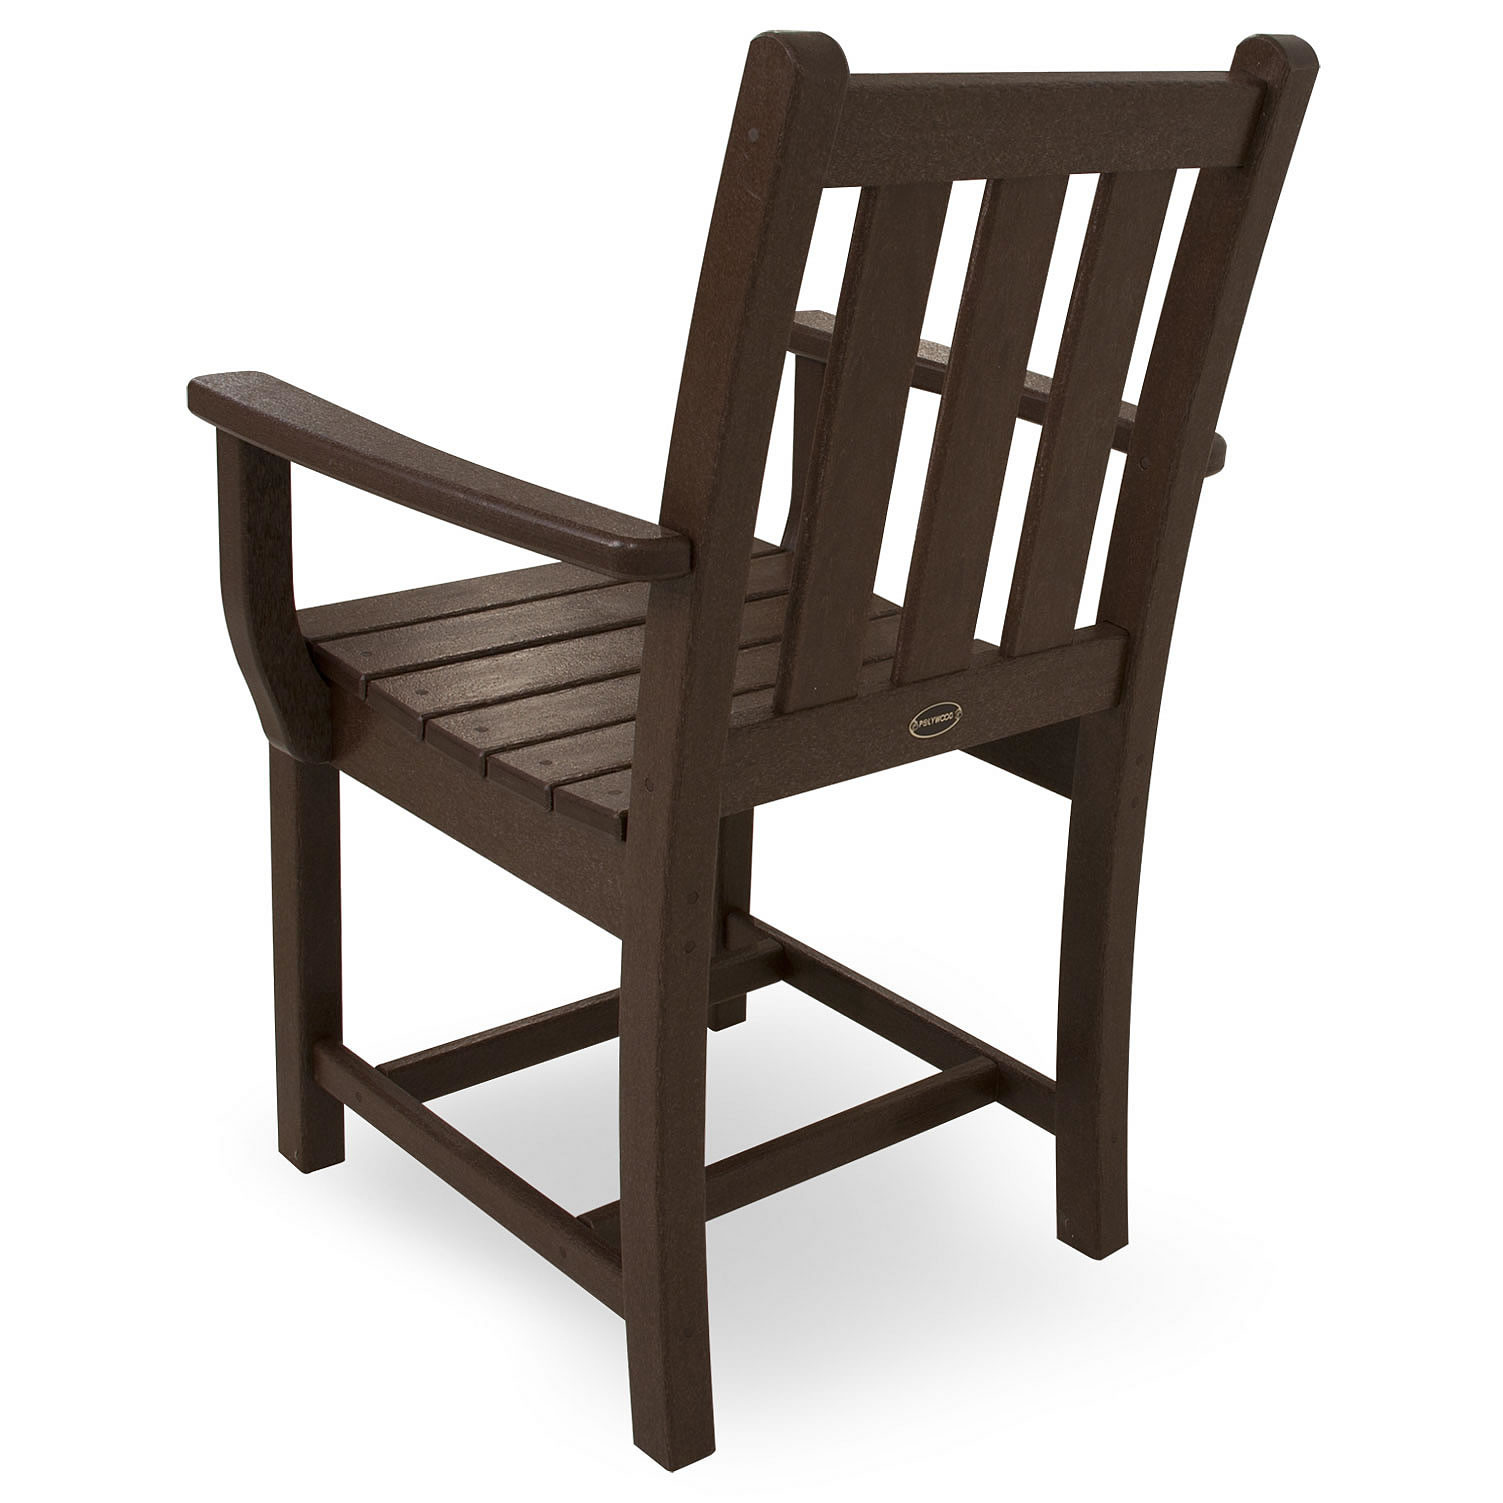 Polywood Traditional Garden Dining Arm Chair Traditional Garden Polywood Outdoor Furniture